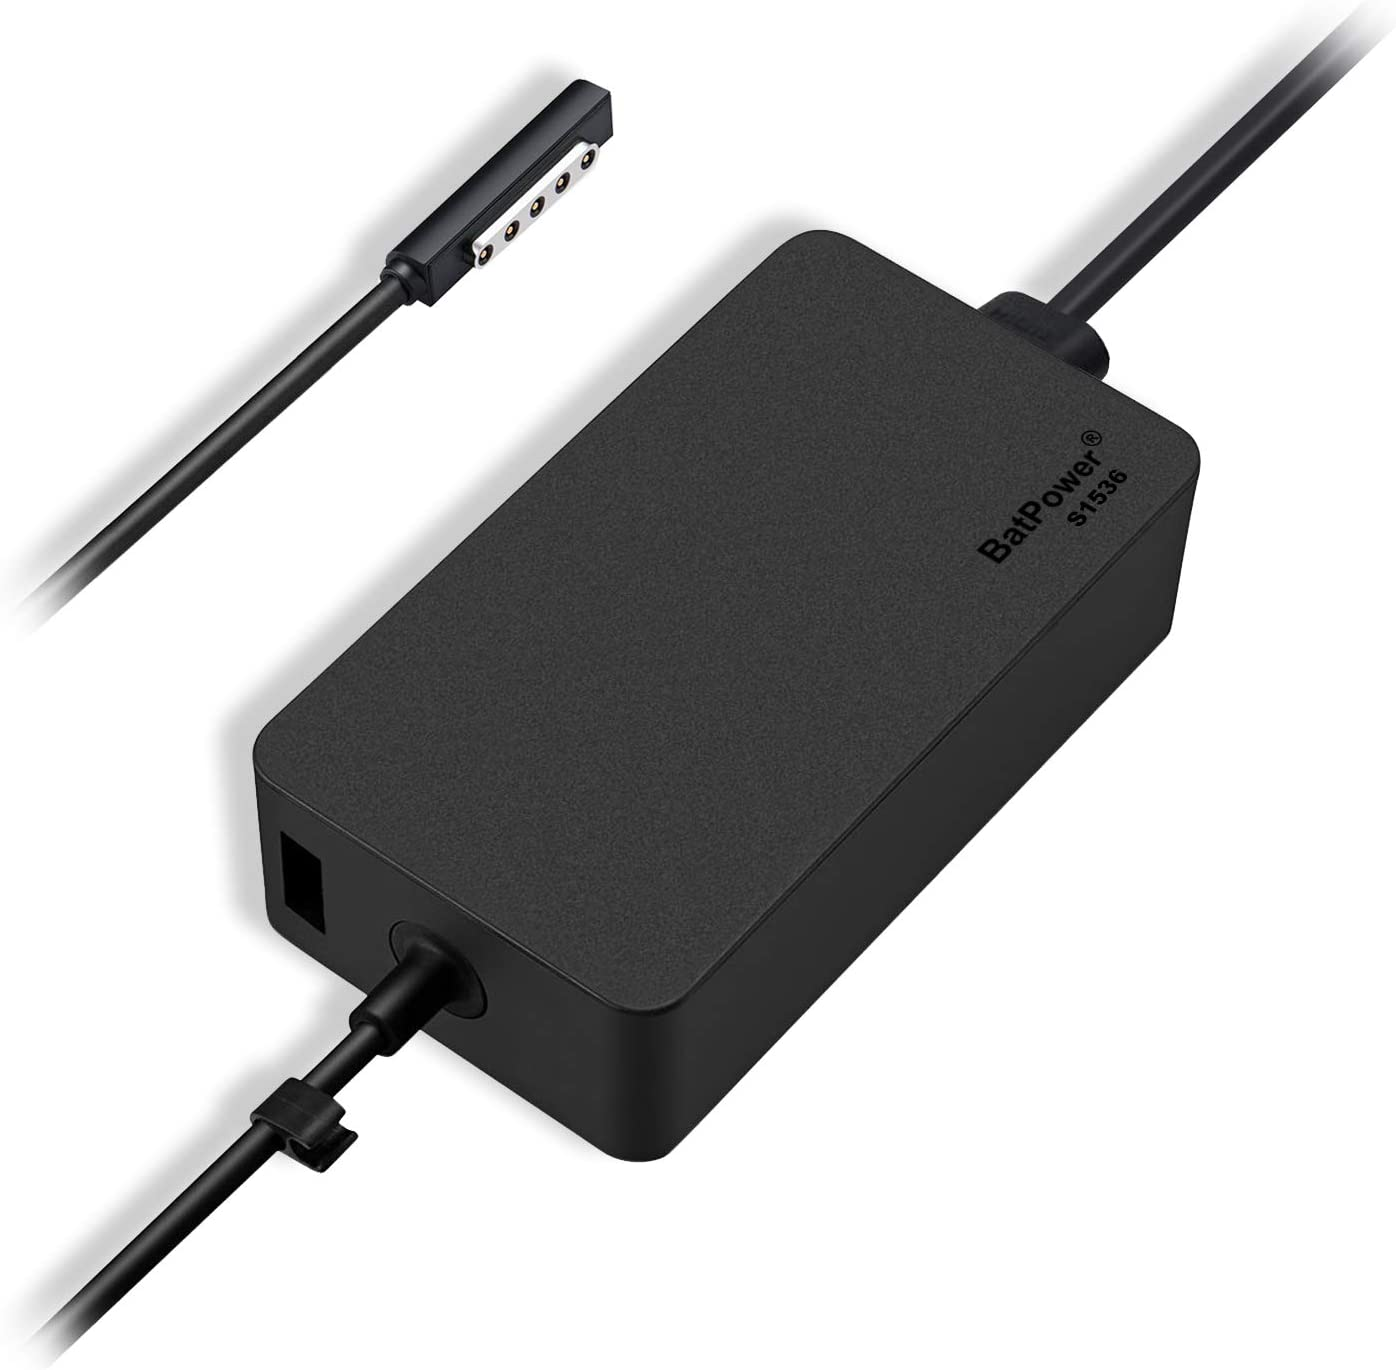 Batpower 12V 3.6A 48W Charger for Microsoft Surface RT Surface Pro 1 Pro 2 and Surface 2 Tablet Ac Adapter 1512 1516 1536 Power Supply Cord with 5V USB Charging Port with US Extension Cord